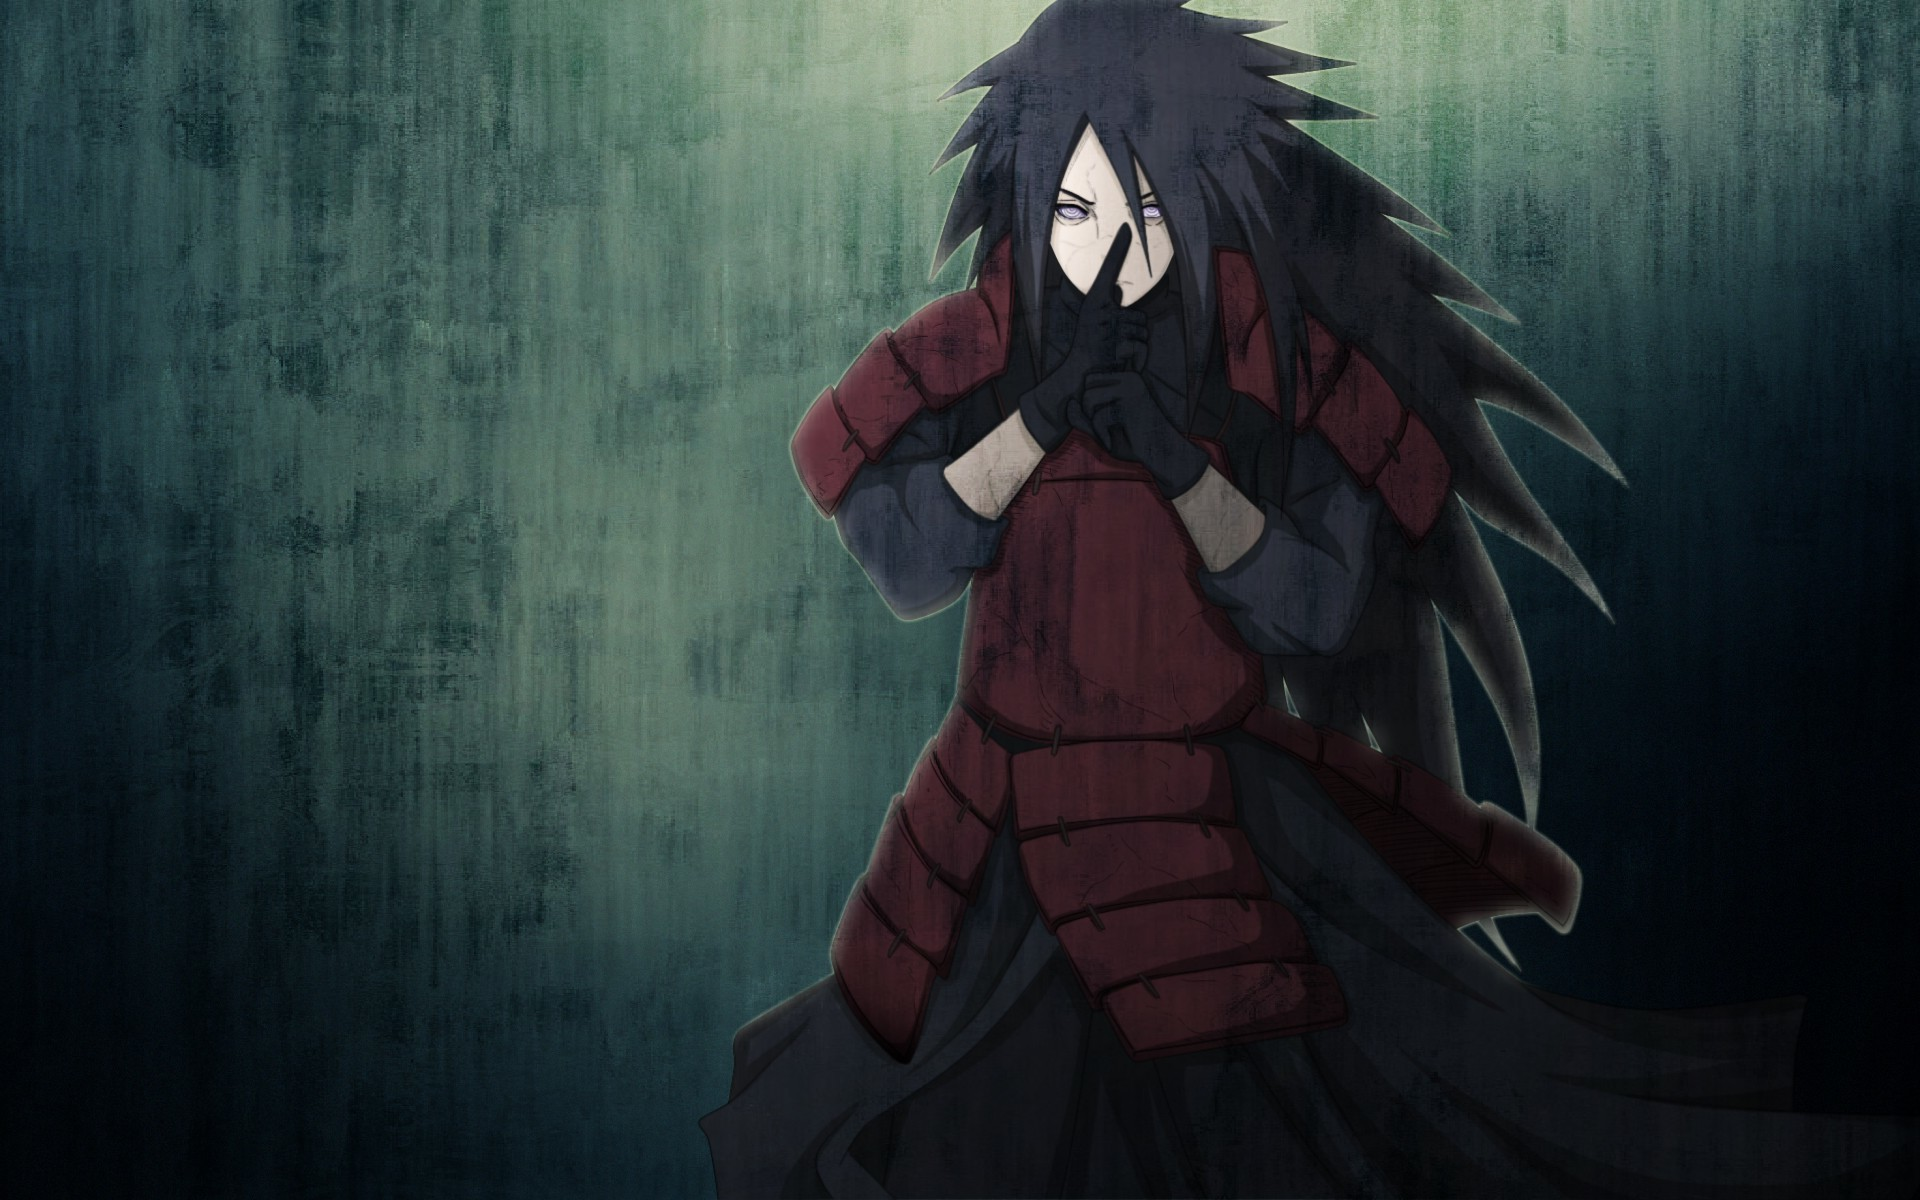 Res: 1920x1200, Uchiha Madara, Rinnegan, Anime, Naruto Shippuuden Wallpapers HD / Desktop  and Mobile Backgrounds